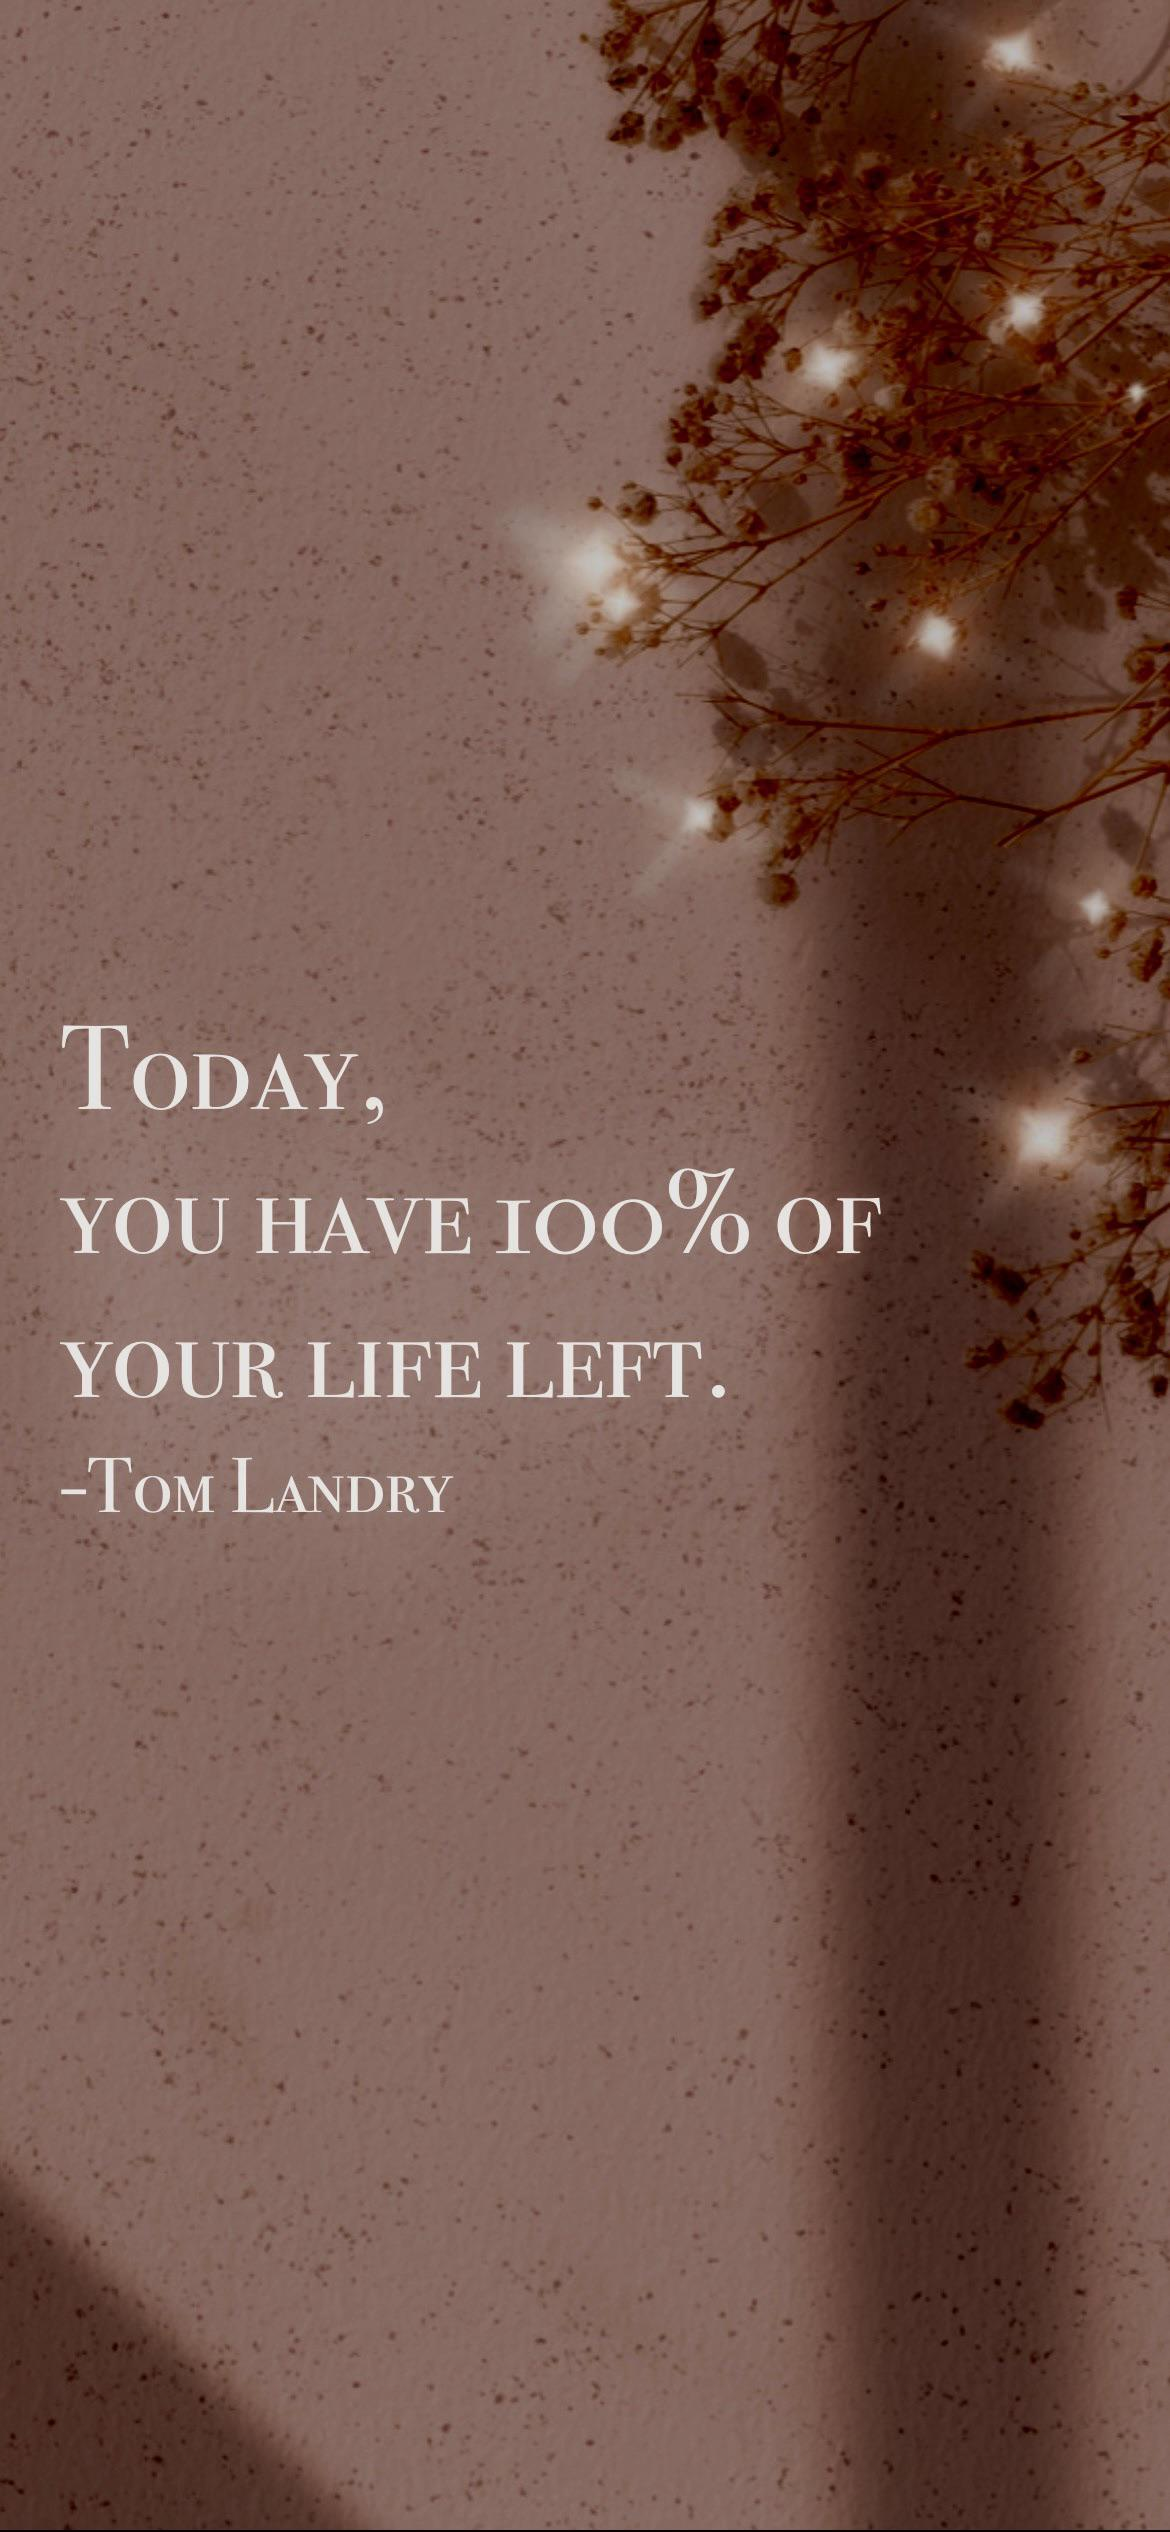 Today, you have 100% of your life left. -Tom Landry [2532 x 1170p]